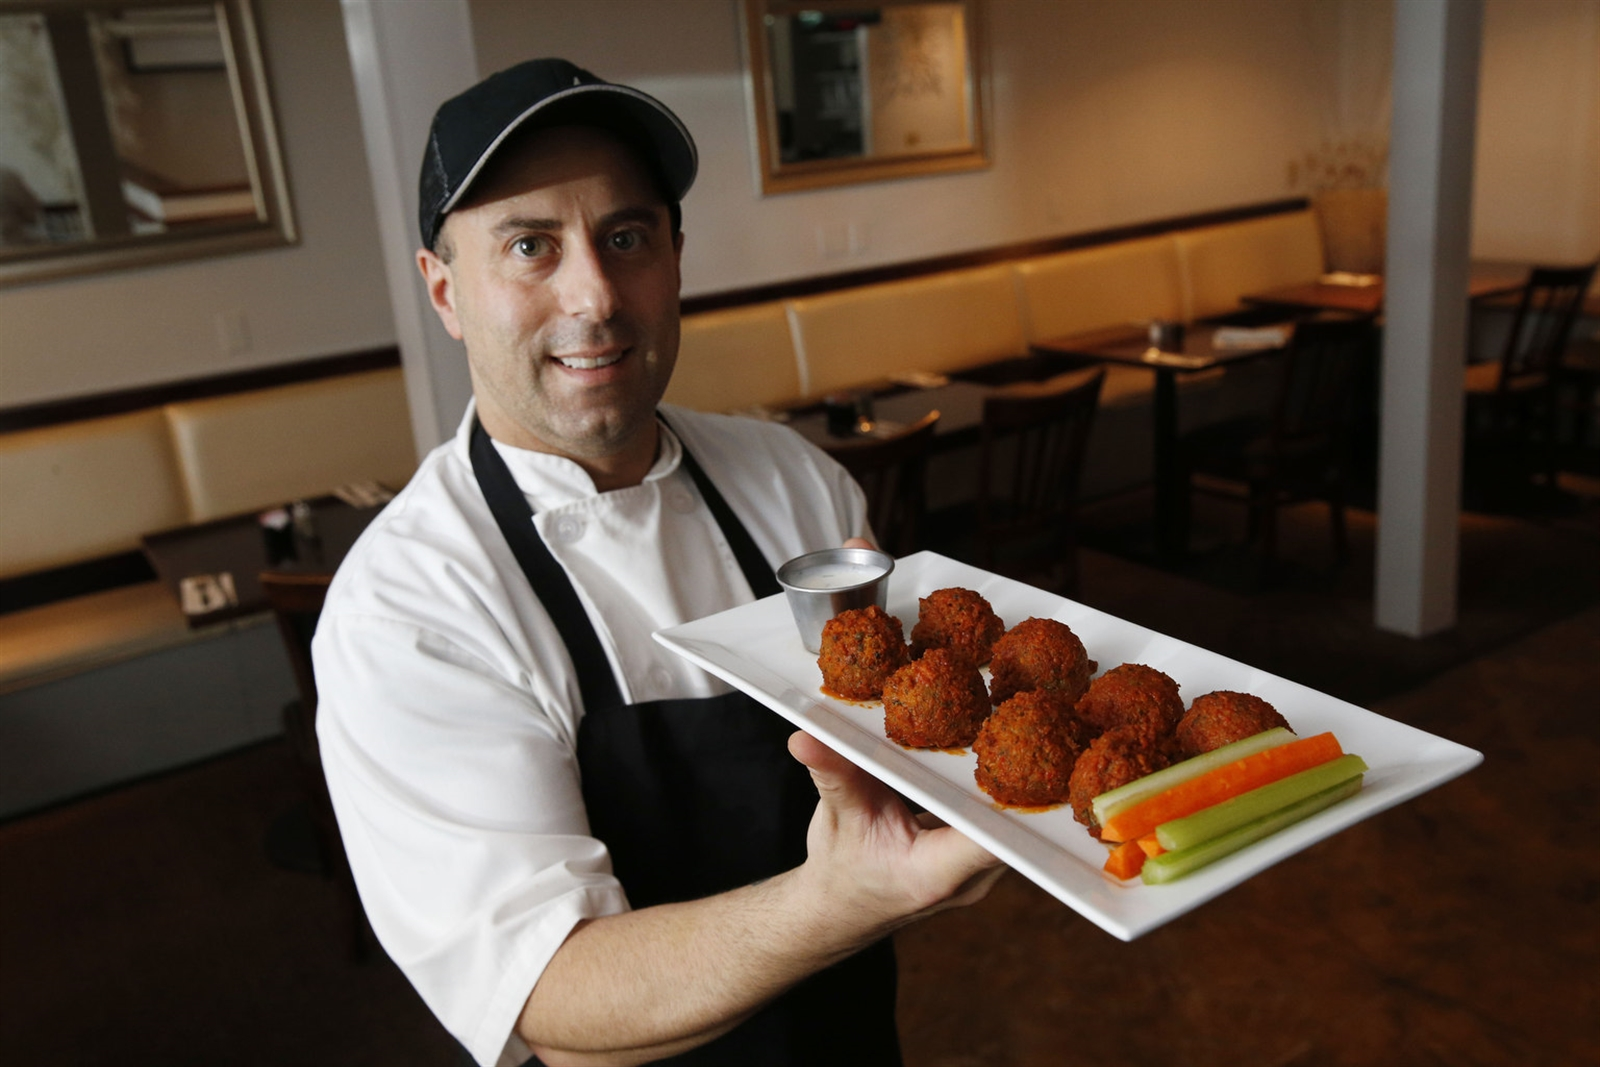 Owner and chef Paul Tsouflidis presents the Buffalo falafel fritters.